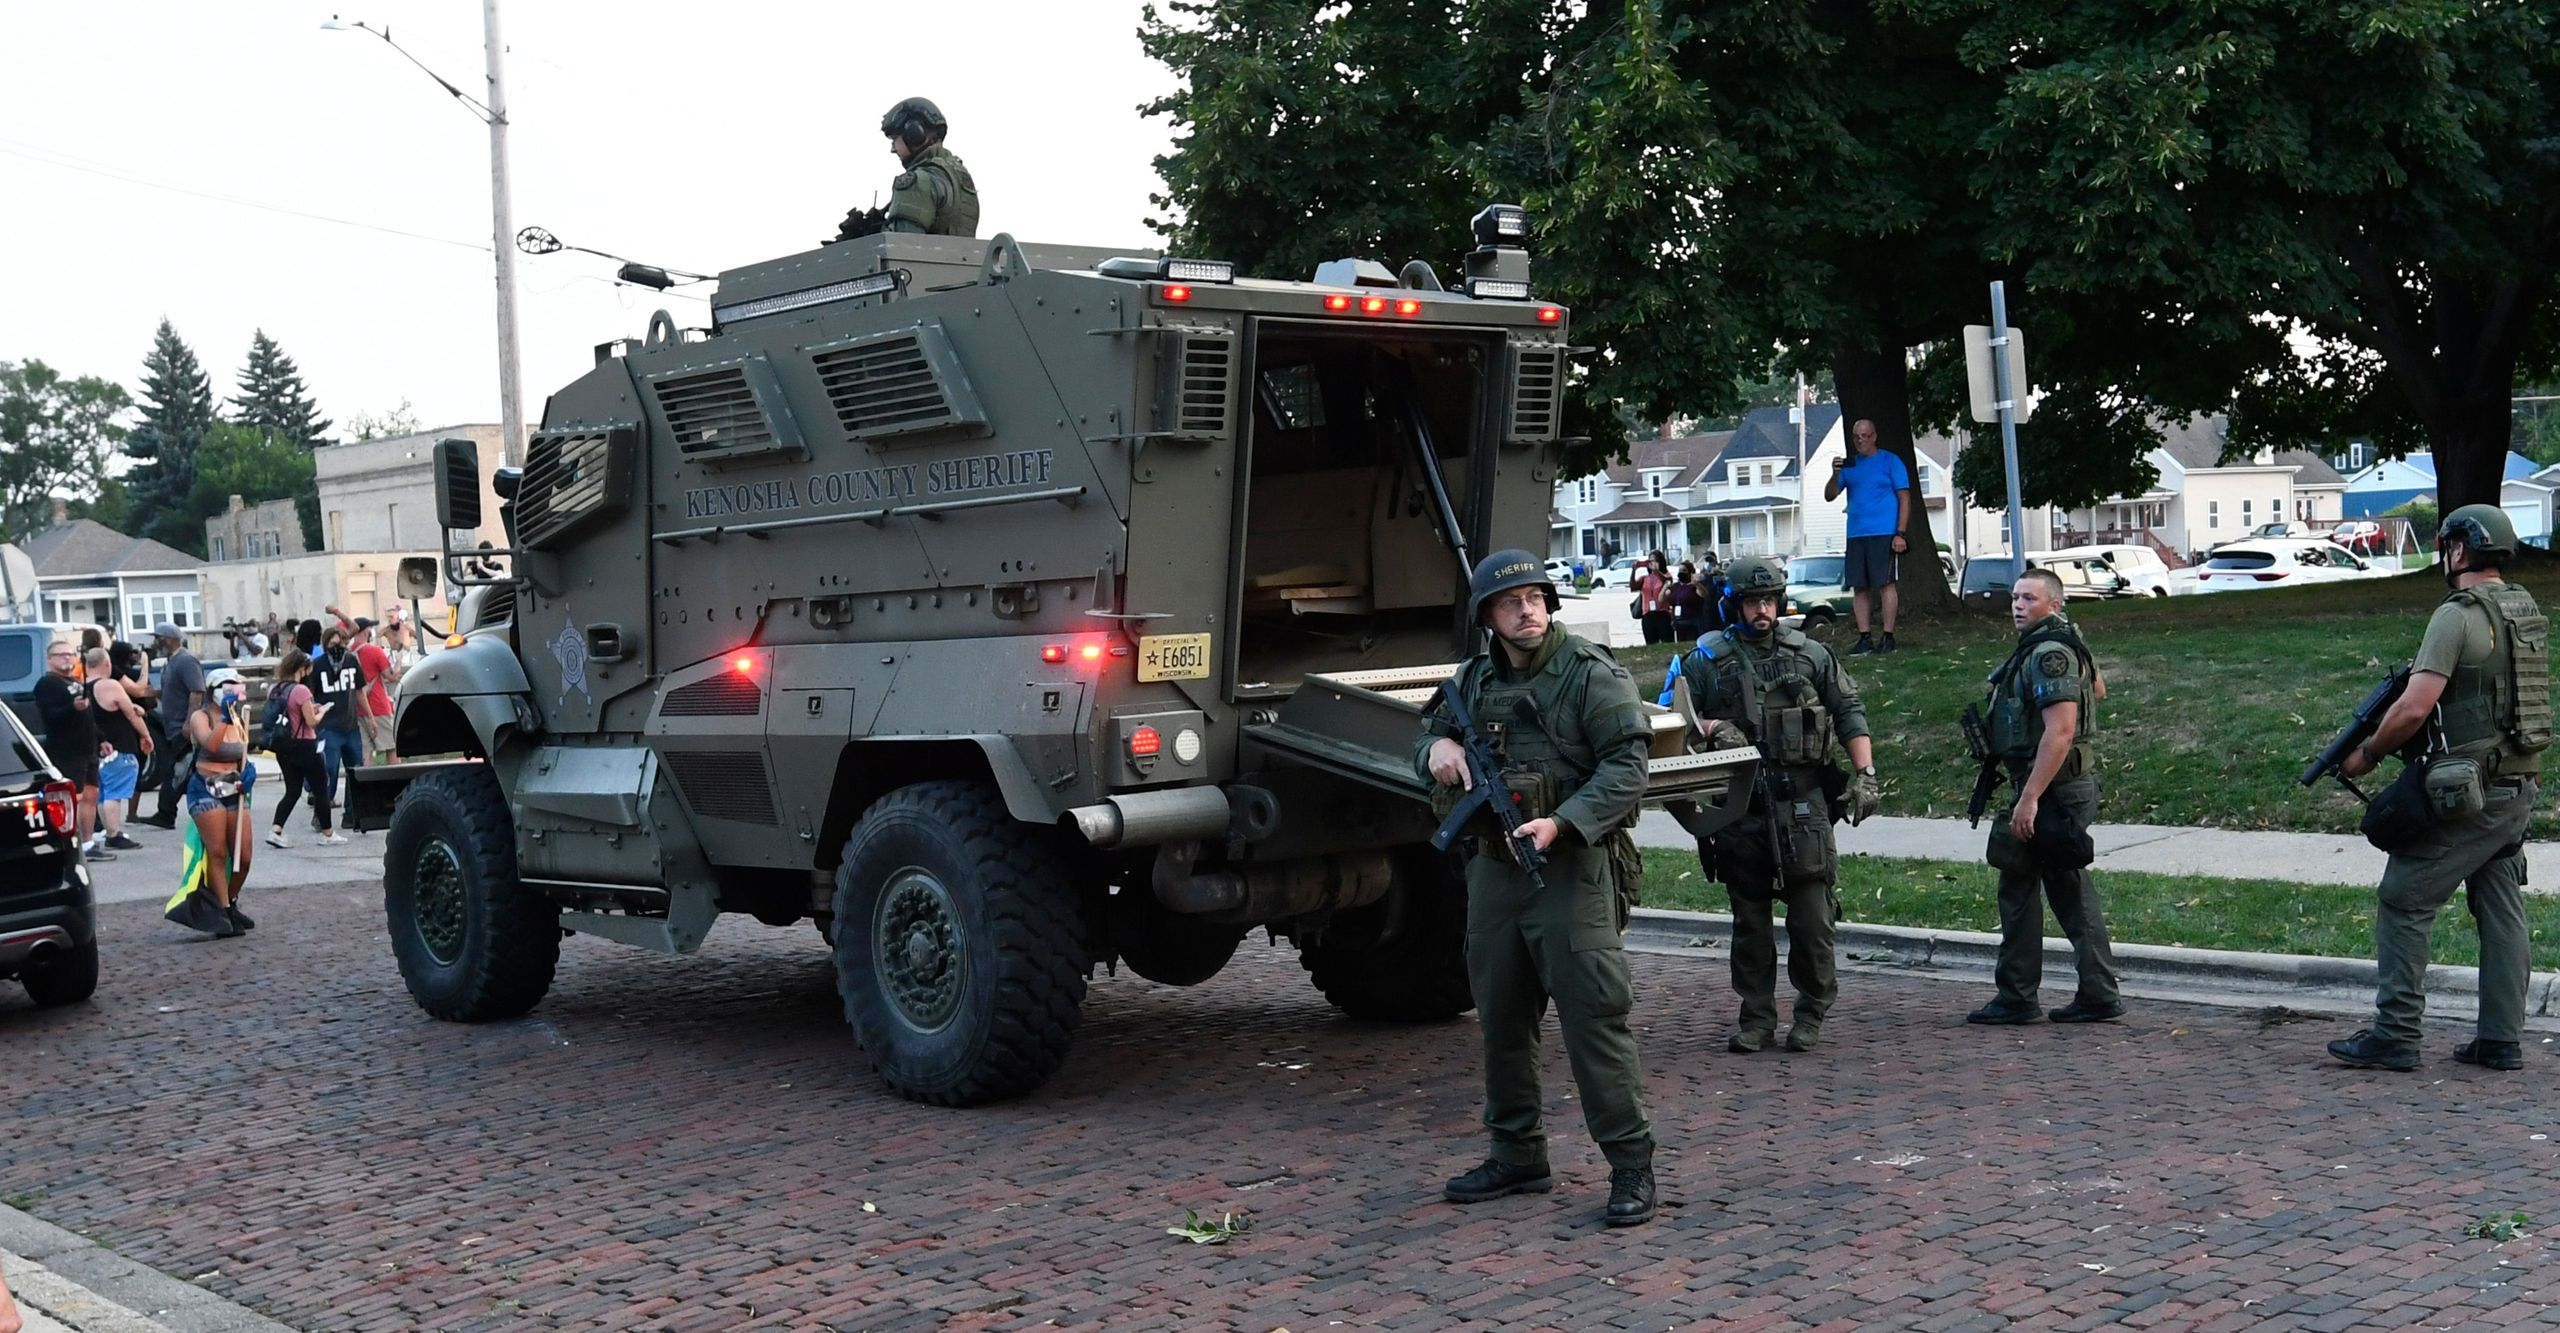 Officers arrive at the scene of a protest in a Kenosha County Sheriff's Department armored vehicle on Aug. 26, 2020.